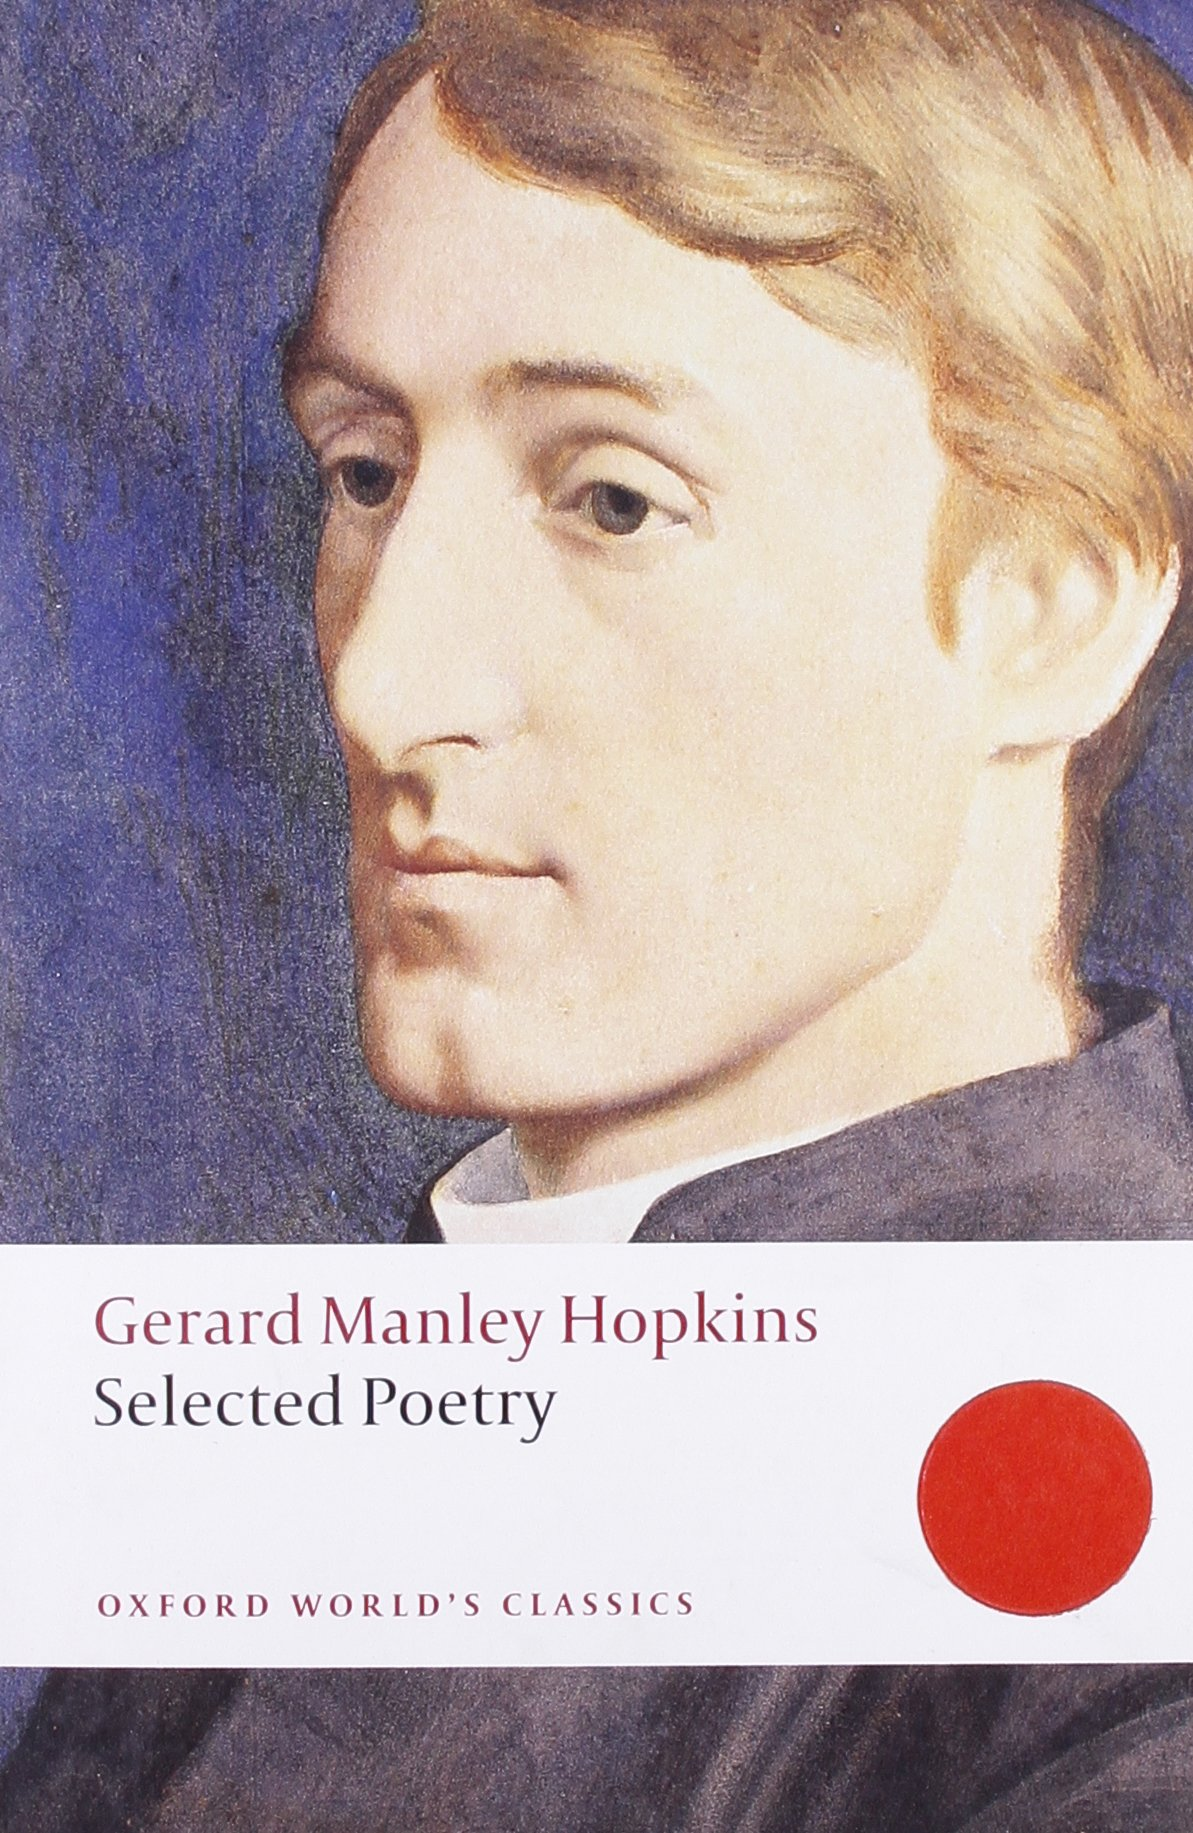 Selected Poetry (Oxford World's Classics): Gerard Manley Hopkins, Catherine Phillips: 9780199537297: Amazon.com: Books